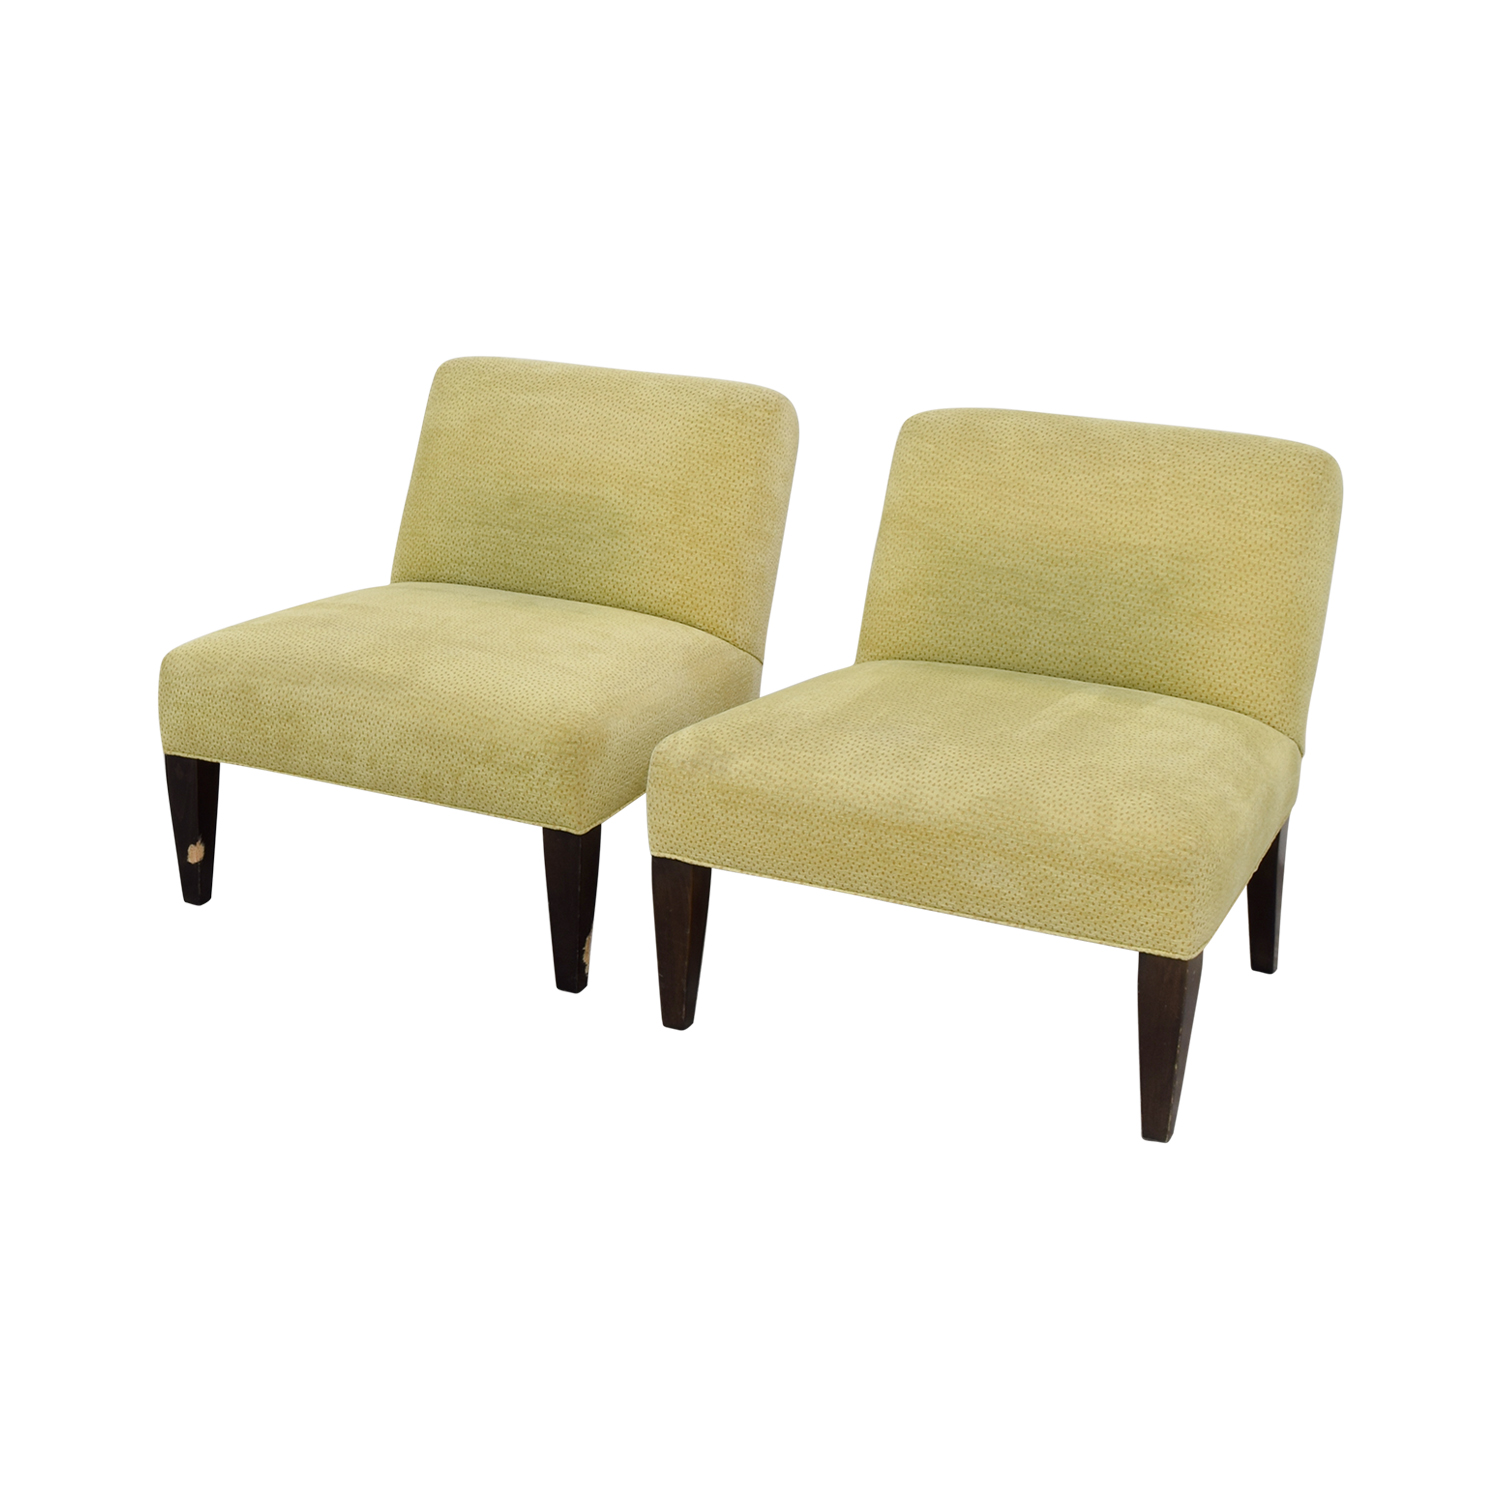 Custom Yellow Club Chairs / Accent Chairs